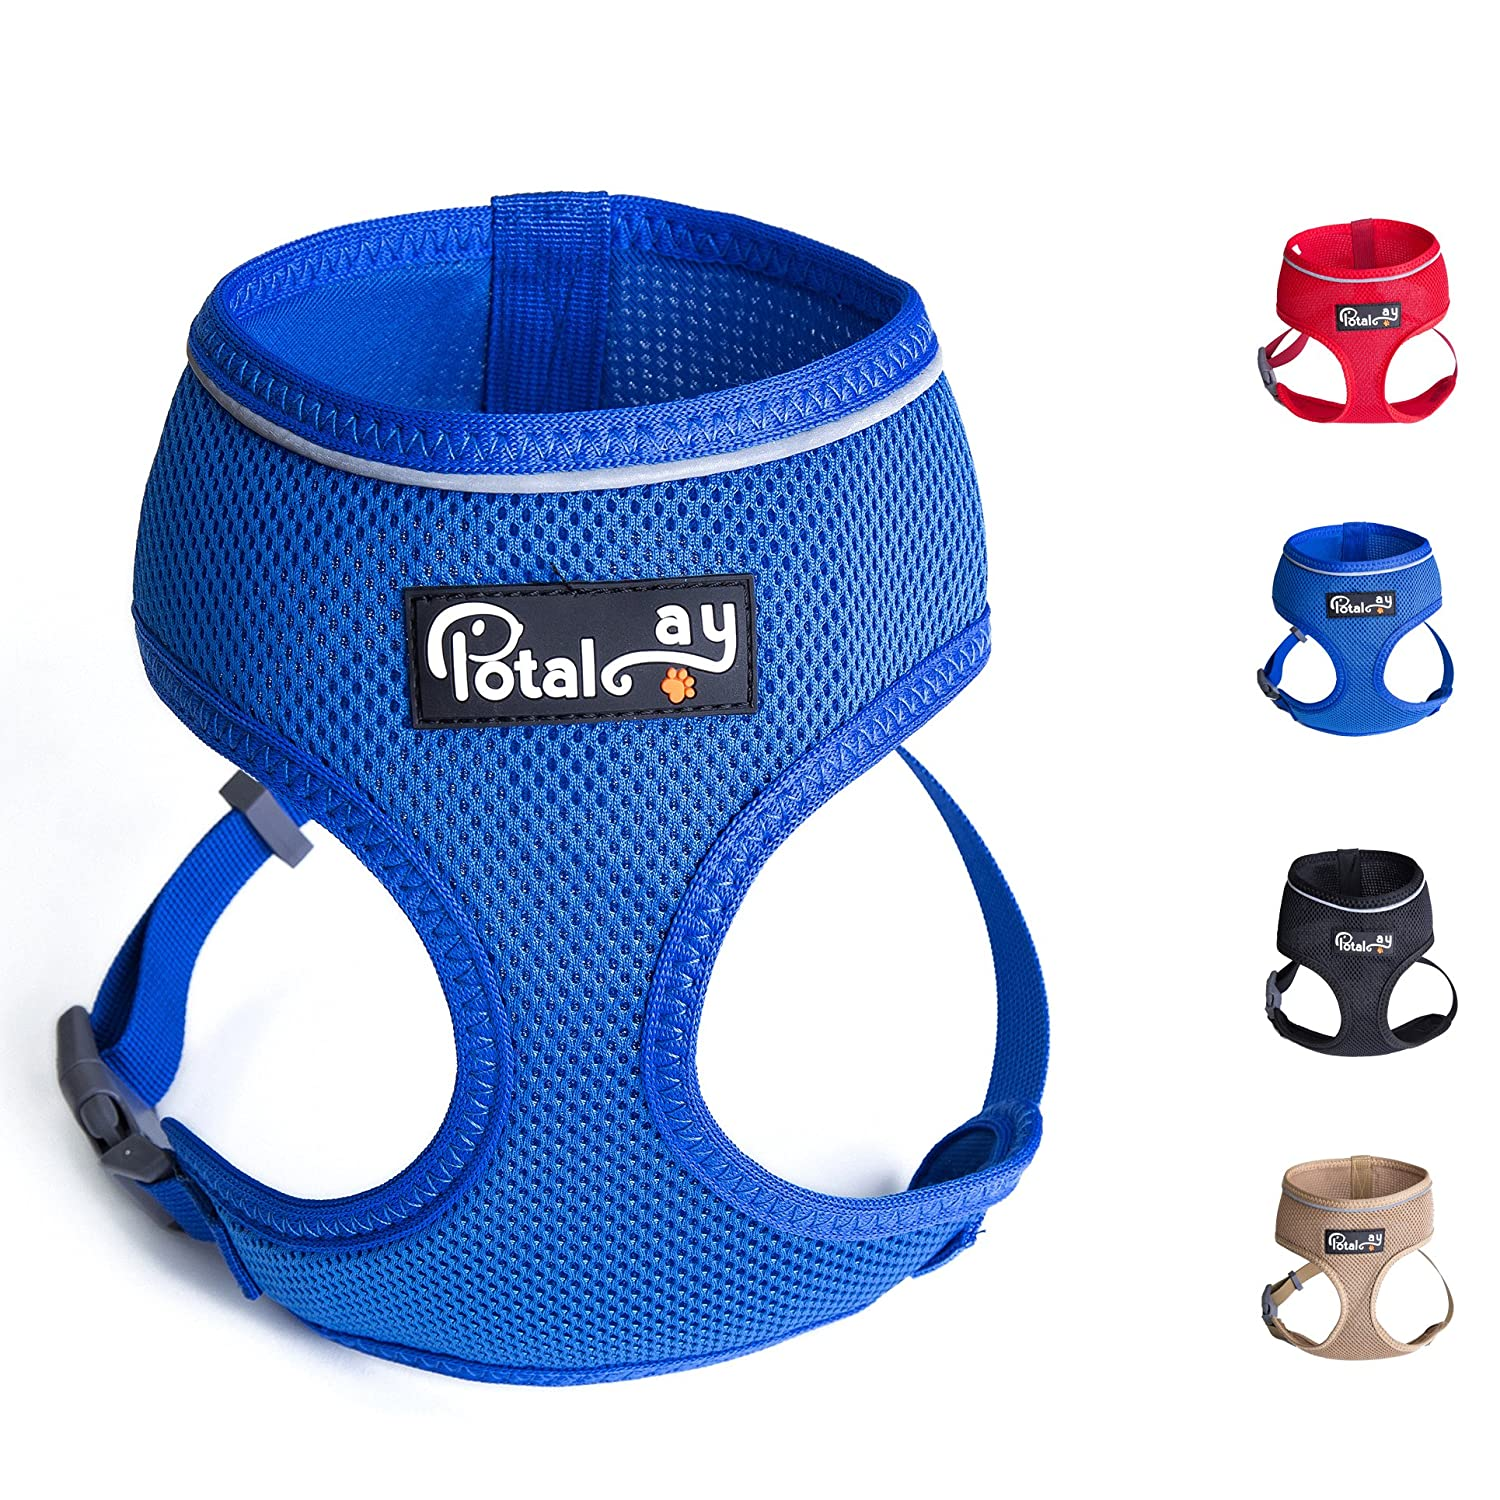 bluee XXL bluee XXL Potalay Control Dog Harness 4-48 lbs; No Pull & No Choke Design, Luxurious Padded Vest, Eco-Friendly, for Puppies and Dogs bluee XXL